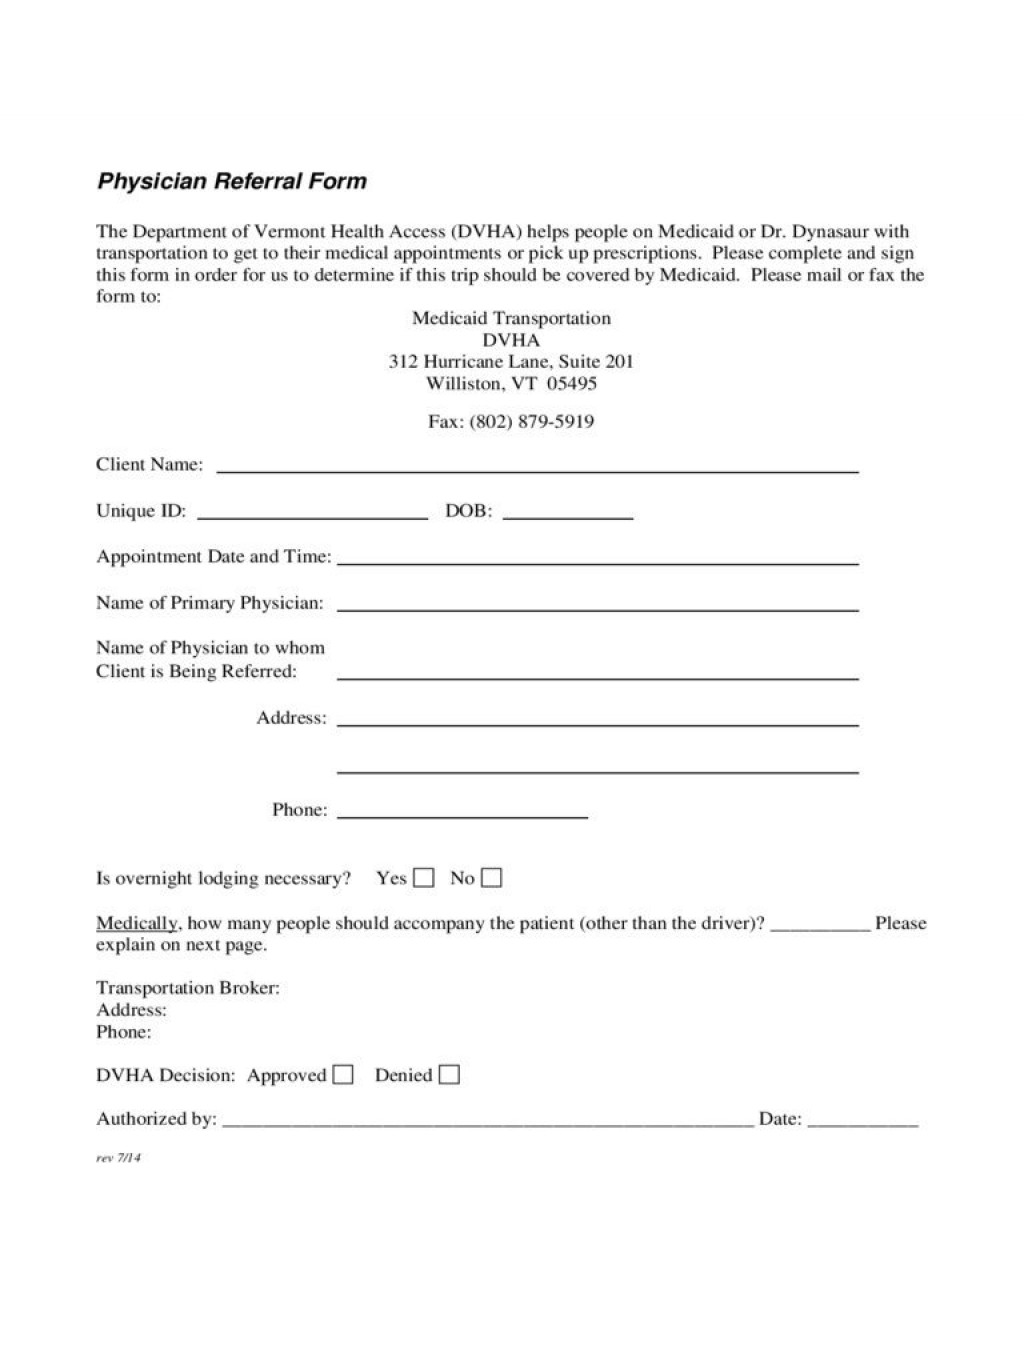 005 Imposing Medical Referral Form Template Highest Clarity  Dental Patient Doctor Free PhysicianLarge